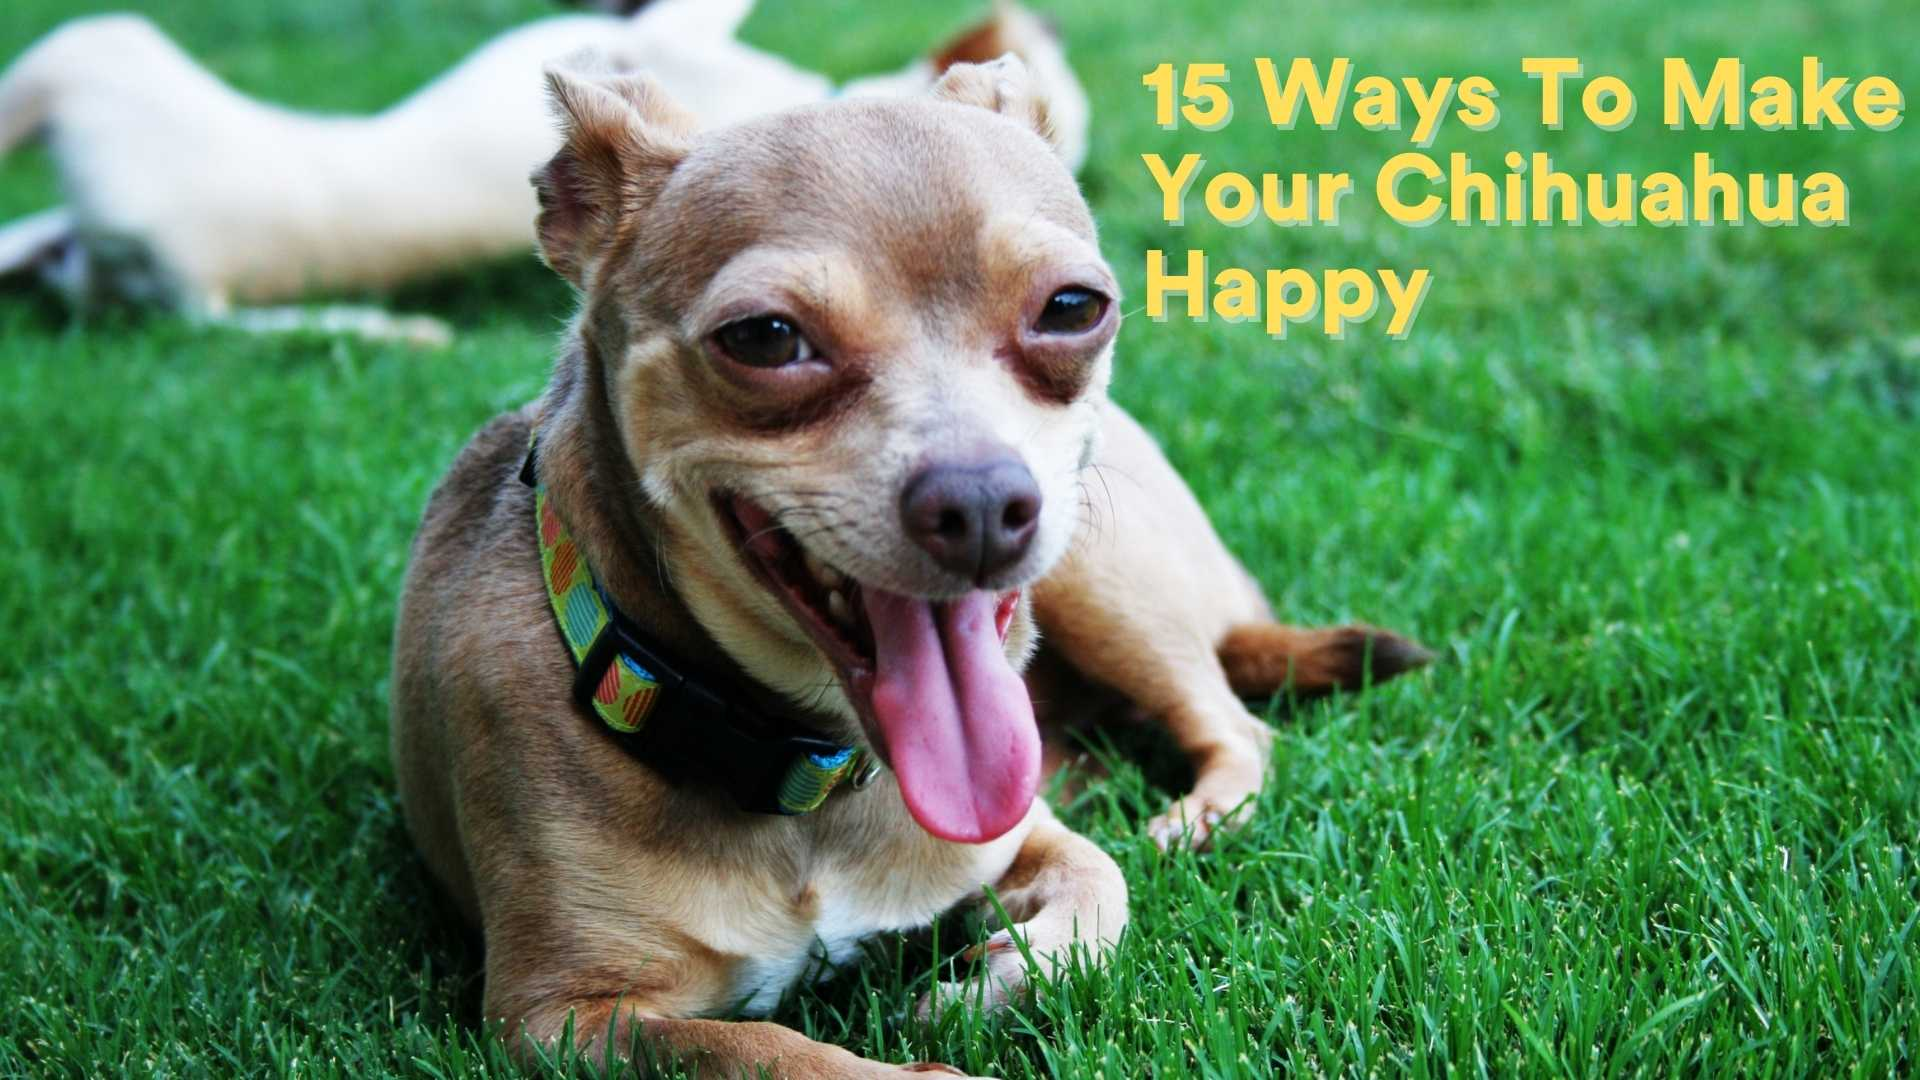 15 Ways To Make Your Chihuahua Happy